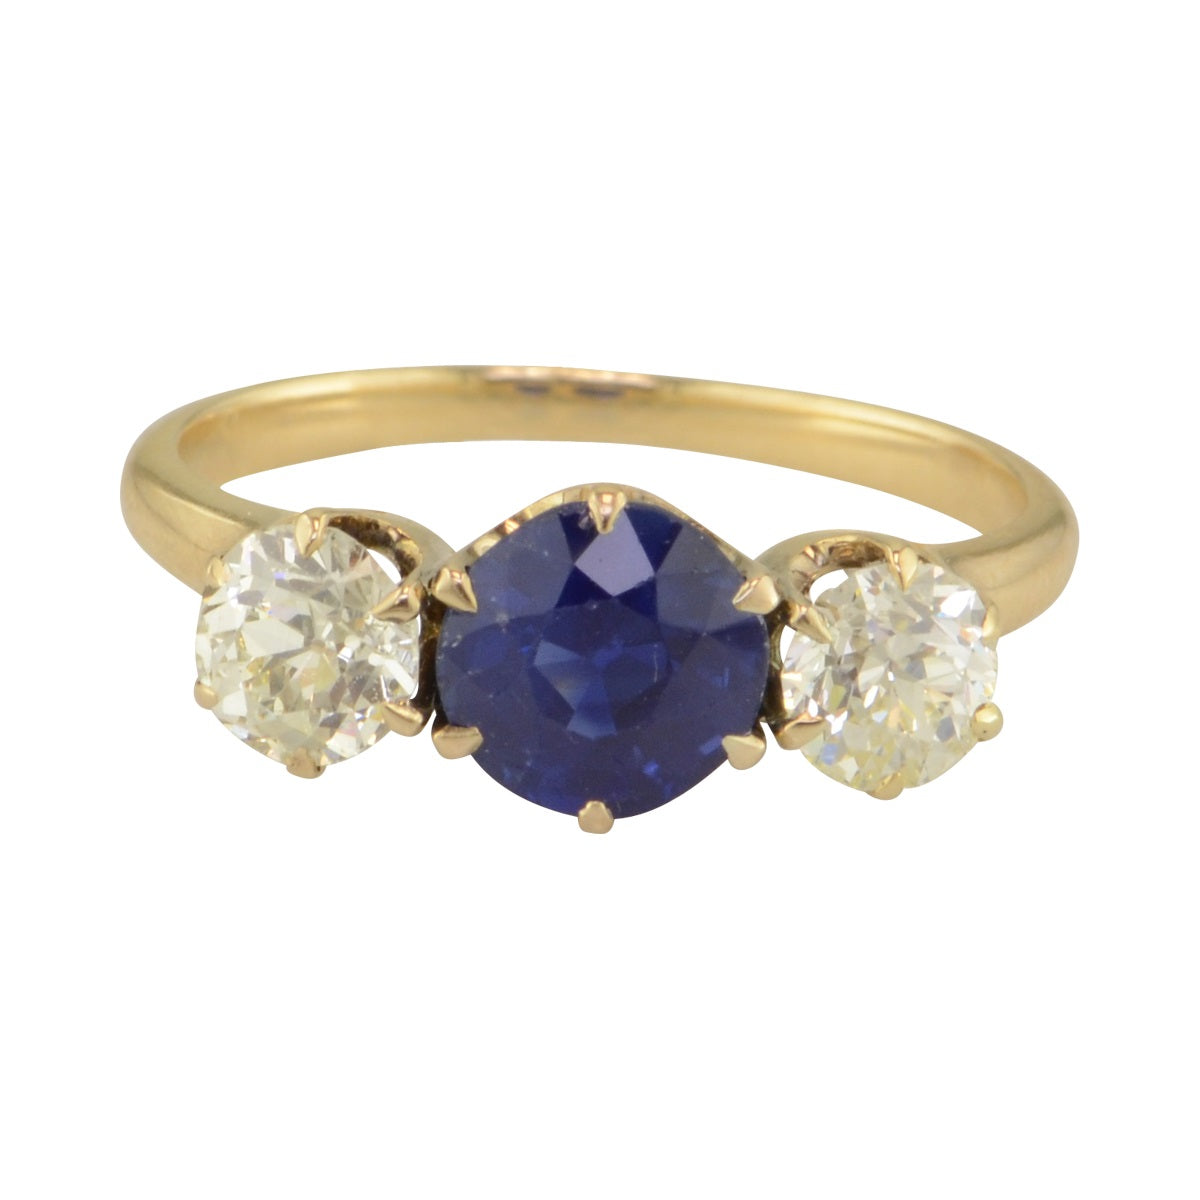 Tryon Creek three stone engagement ring with sapphire and diamond.